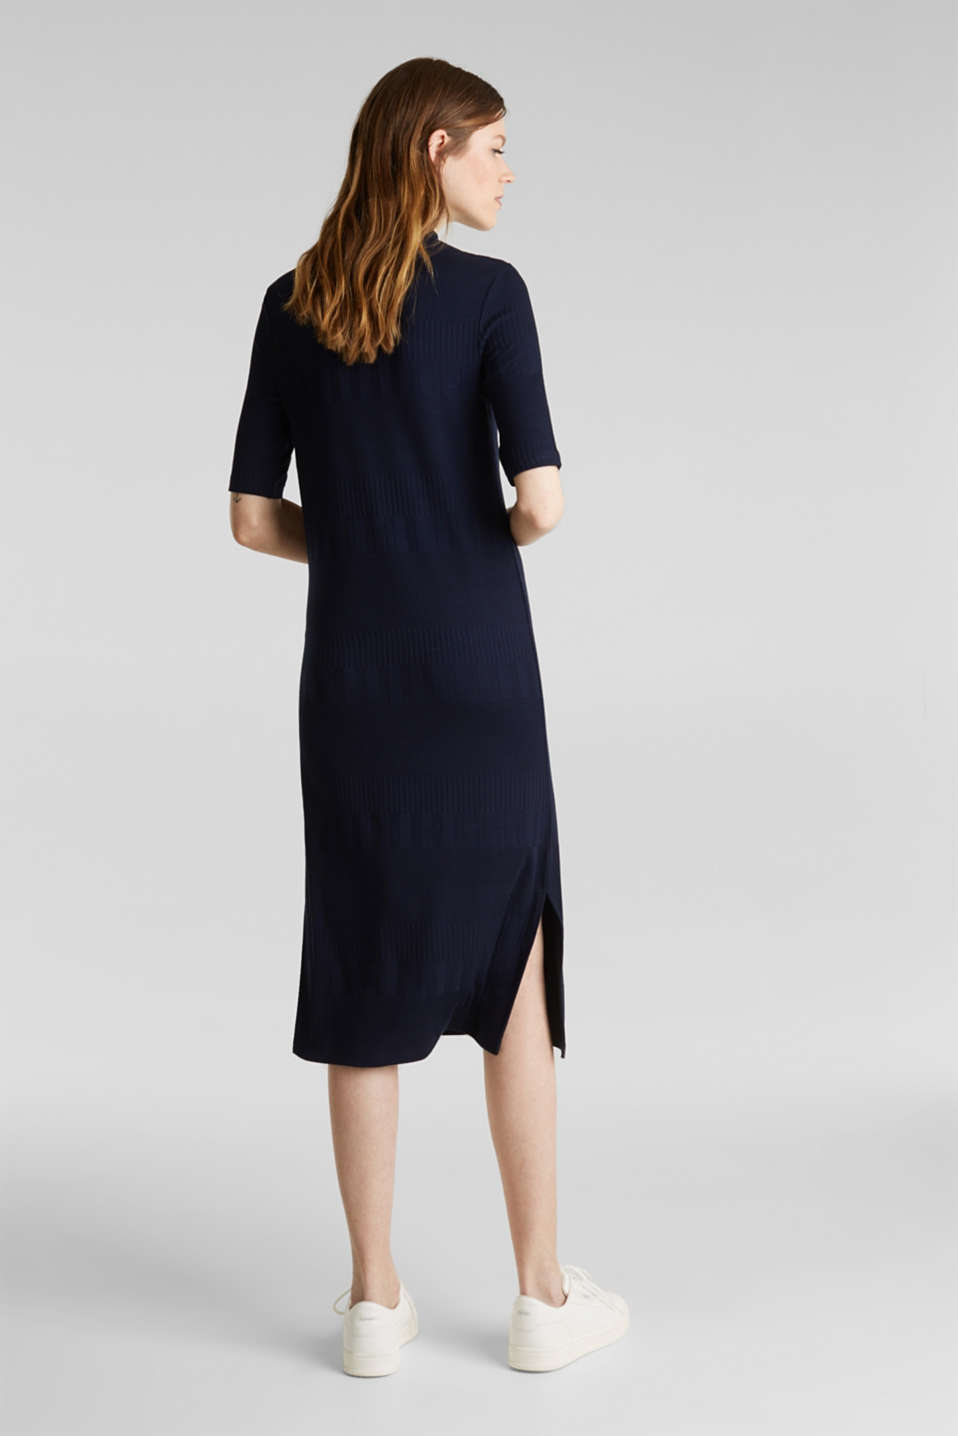 Stretch jersey dress with texture and a stand-up collar, NAVY, detail image number 2